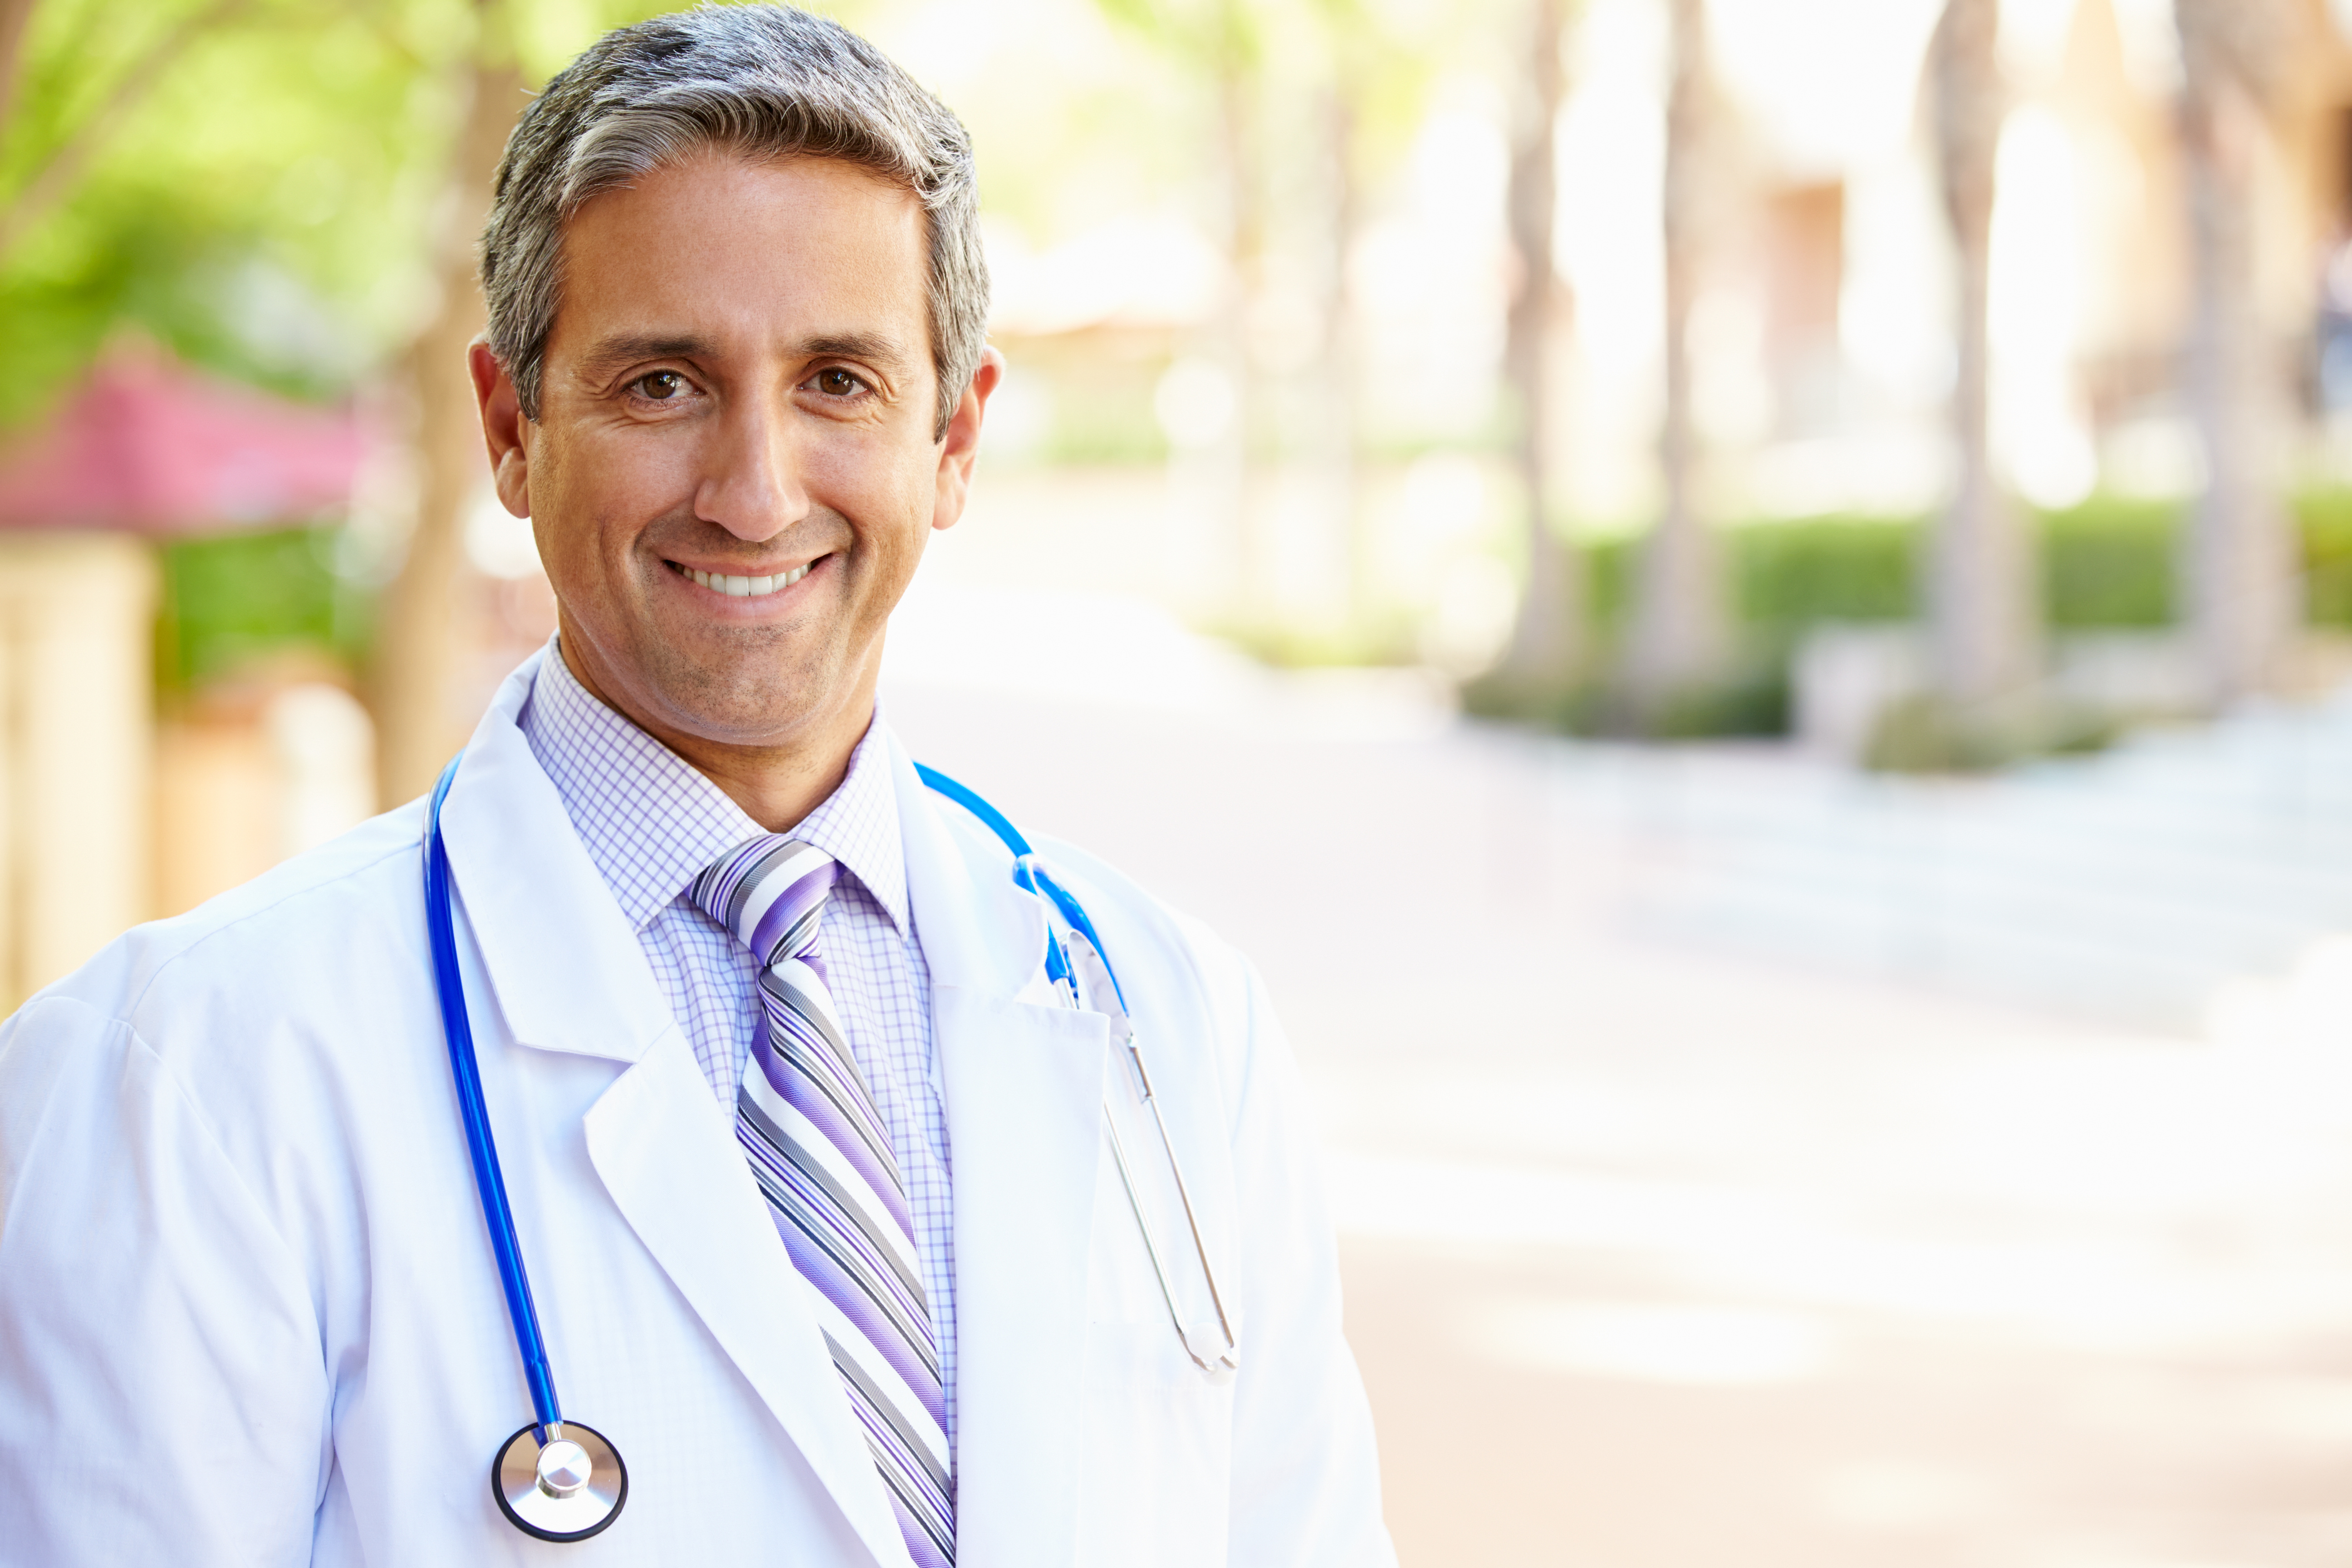 Outdoor Portrait Male Doctor